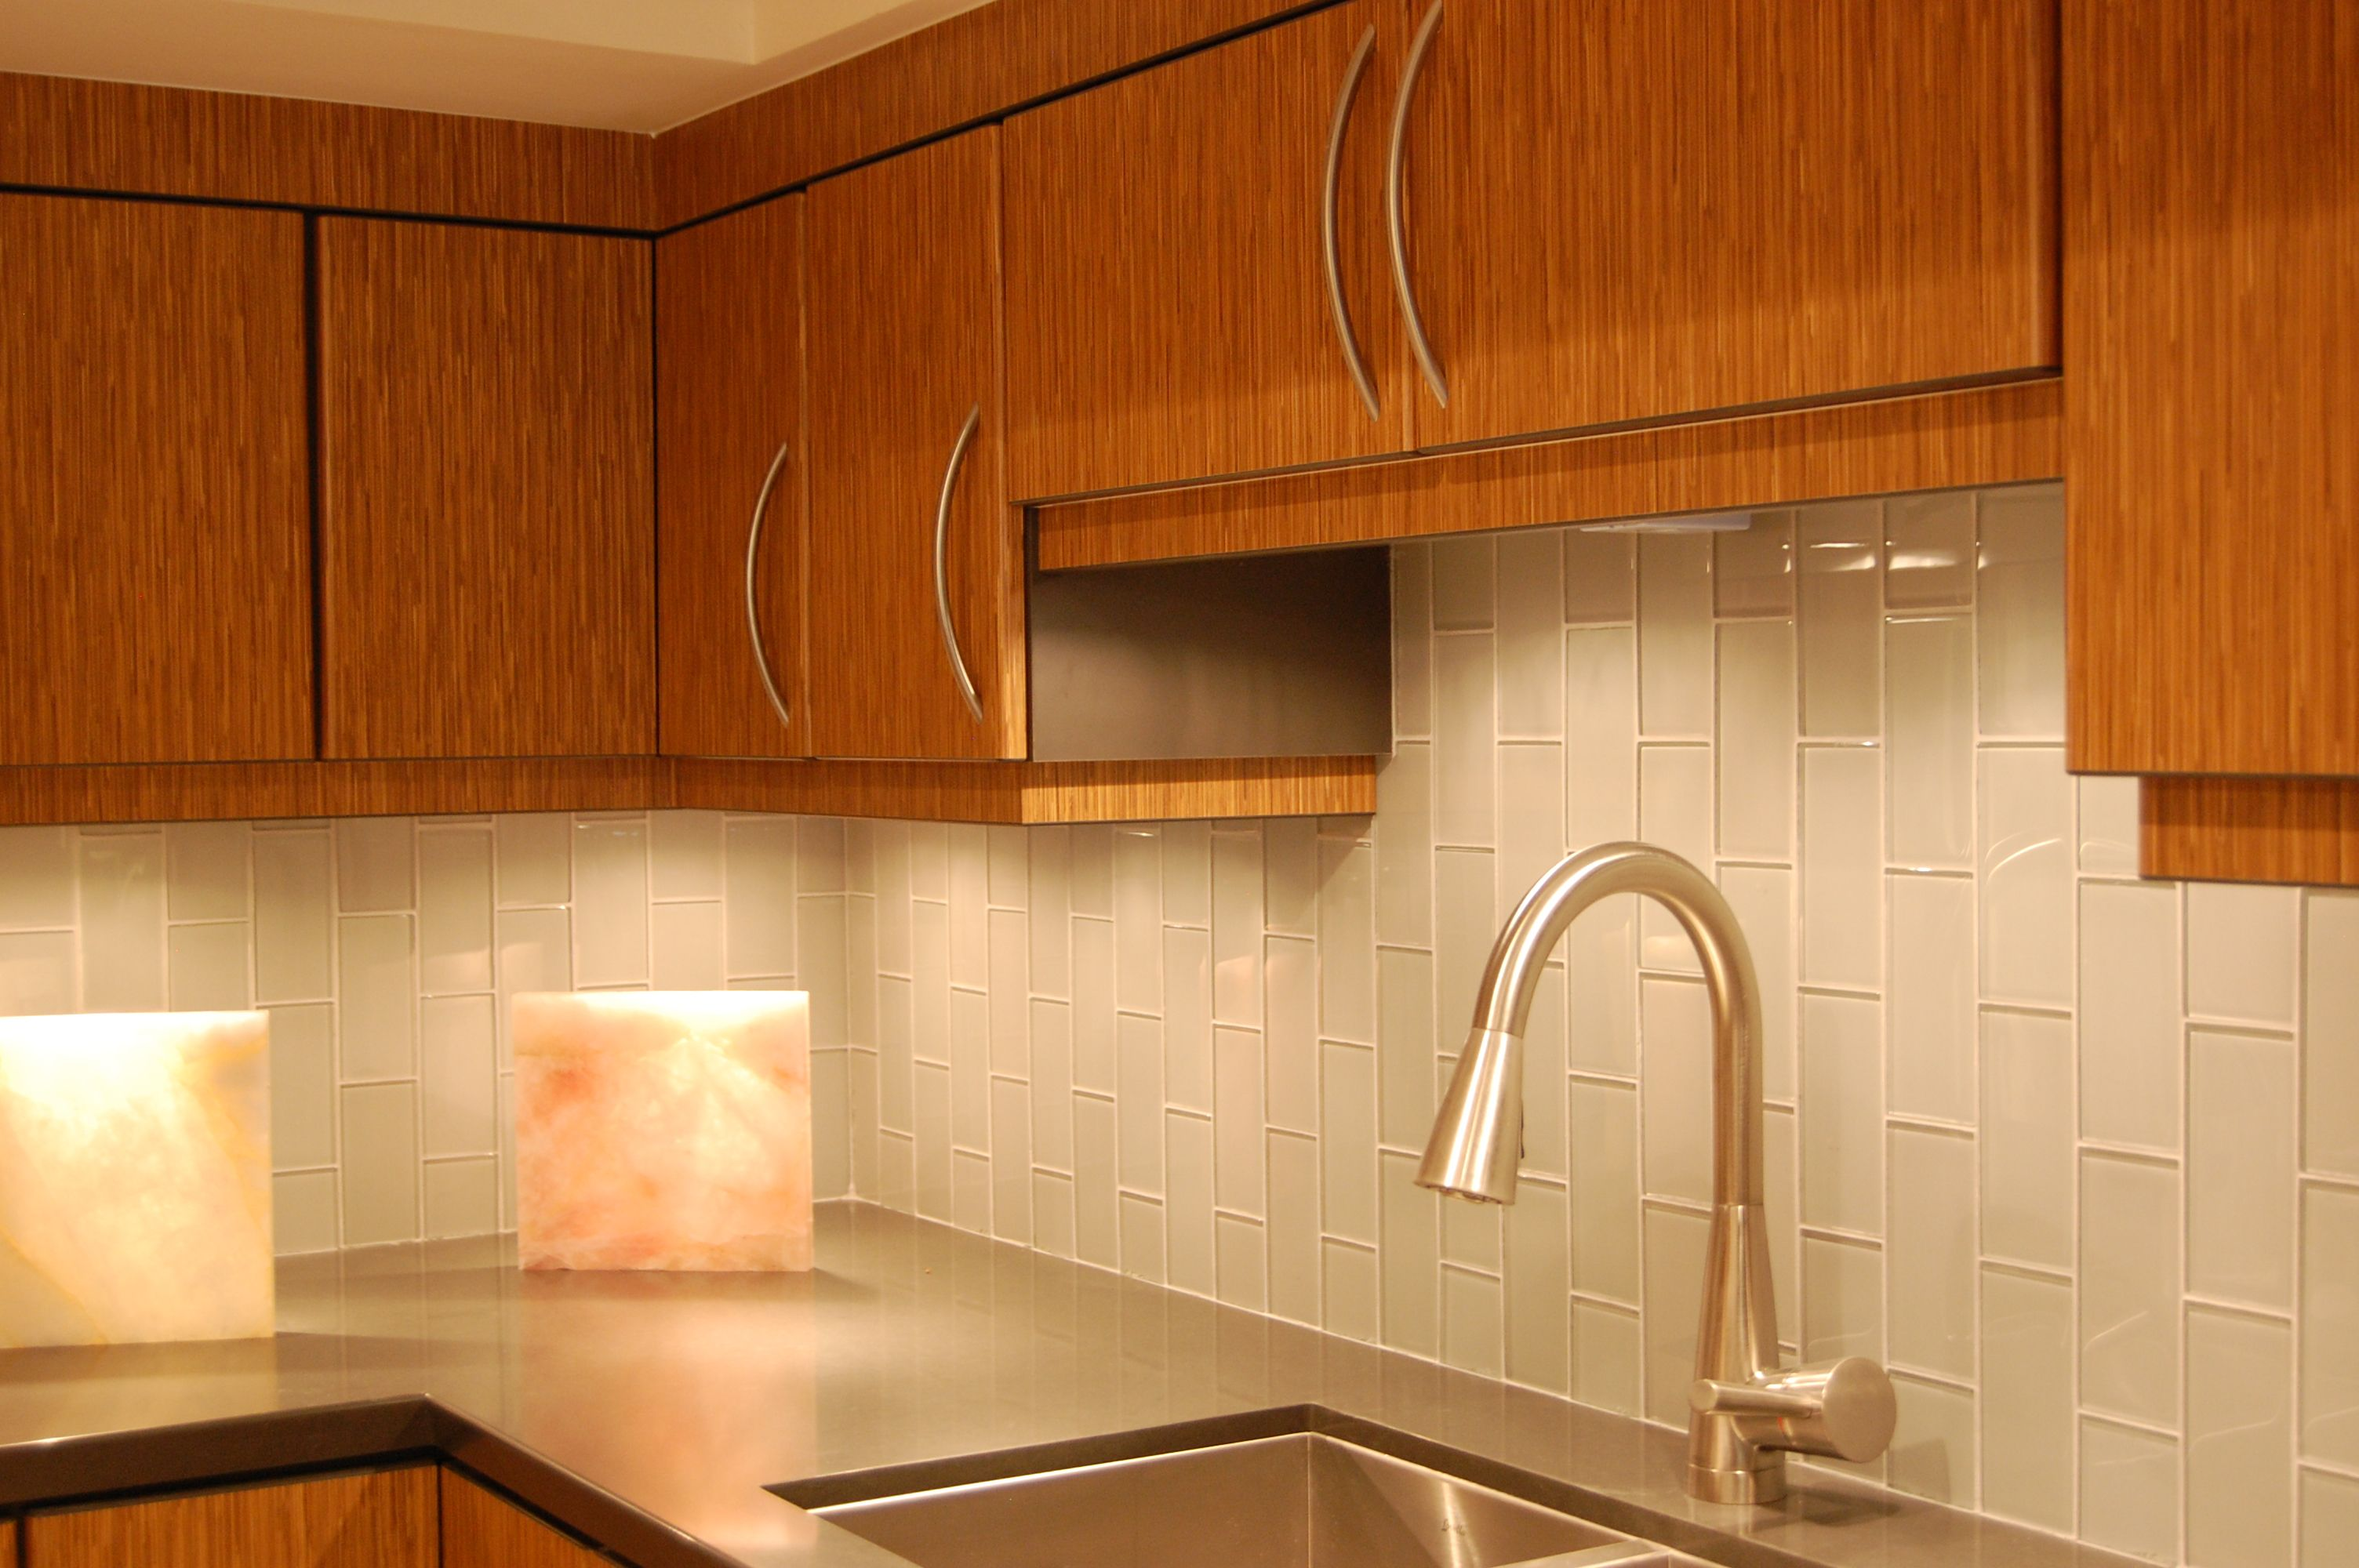 Kitchen backsplash glass on pinterest kitchen backsplash for Small glass backsplash tiles